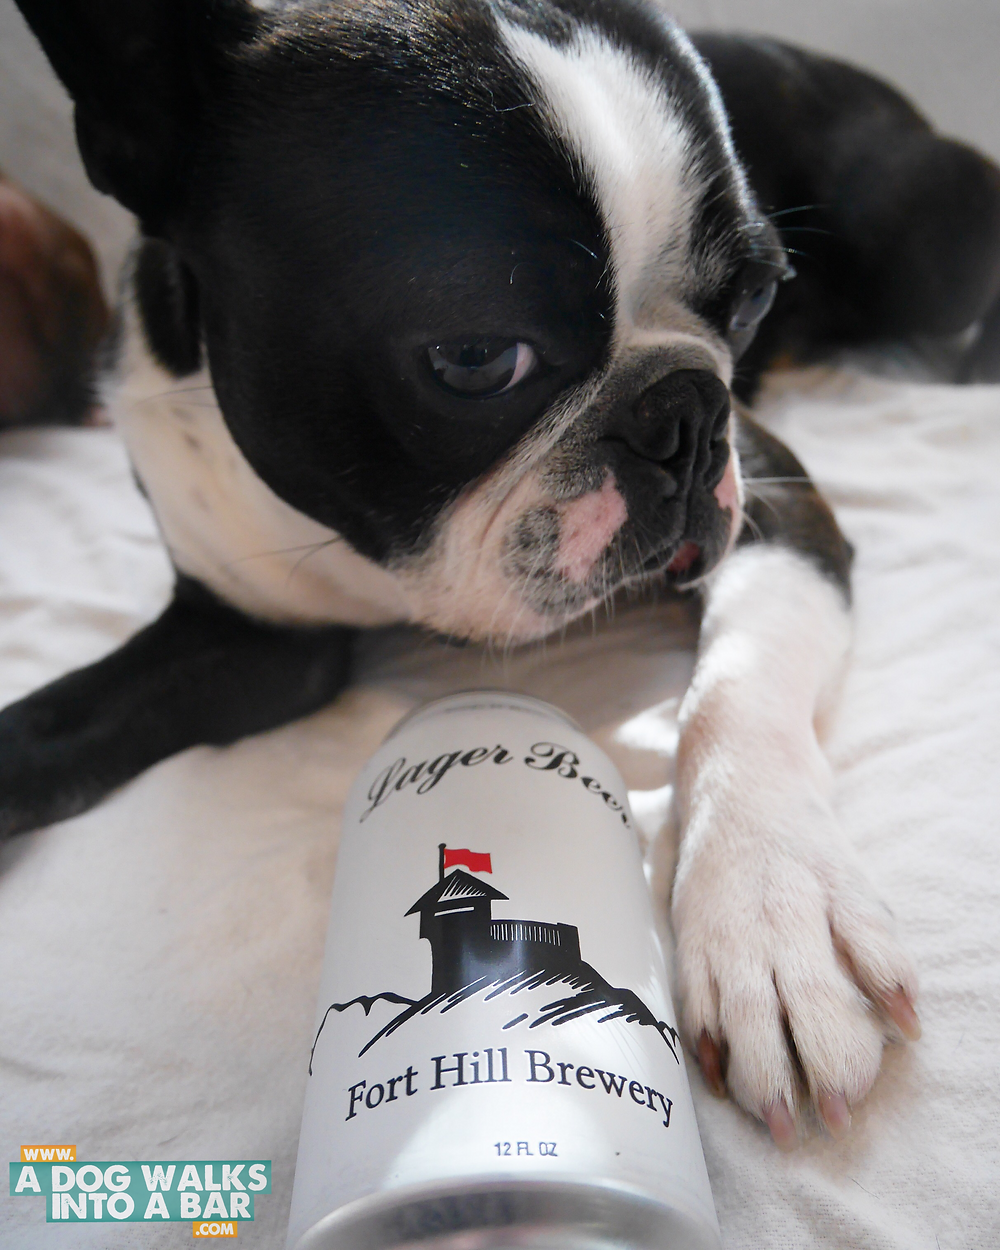 Yoda snuggling with Fort Hill Brewery Beer